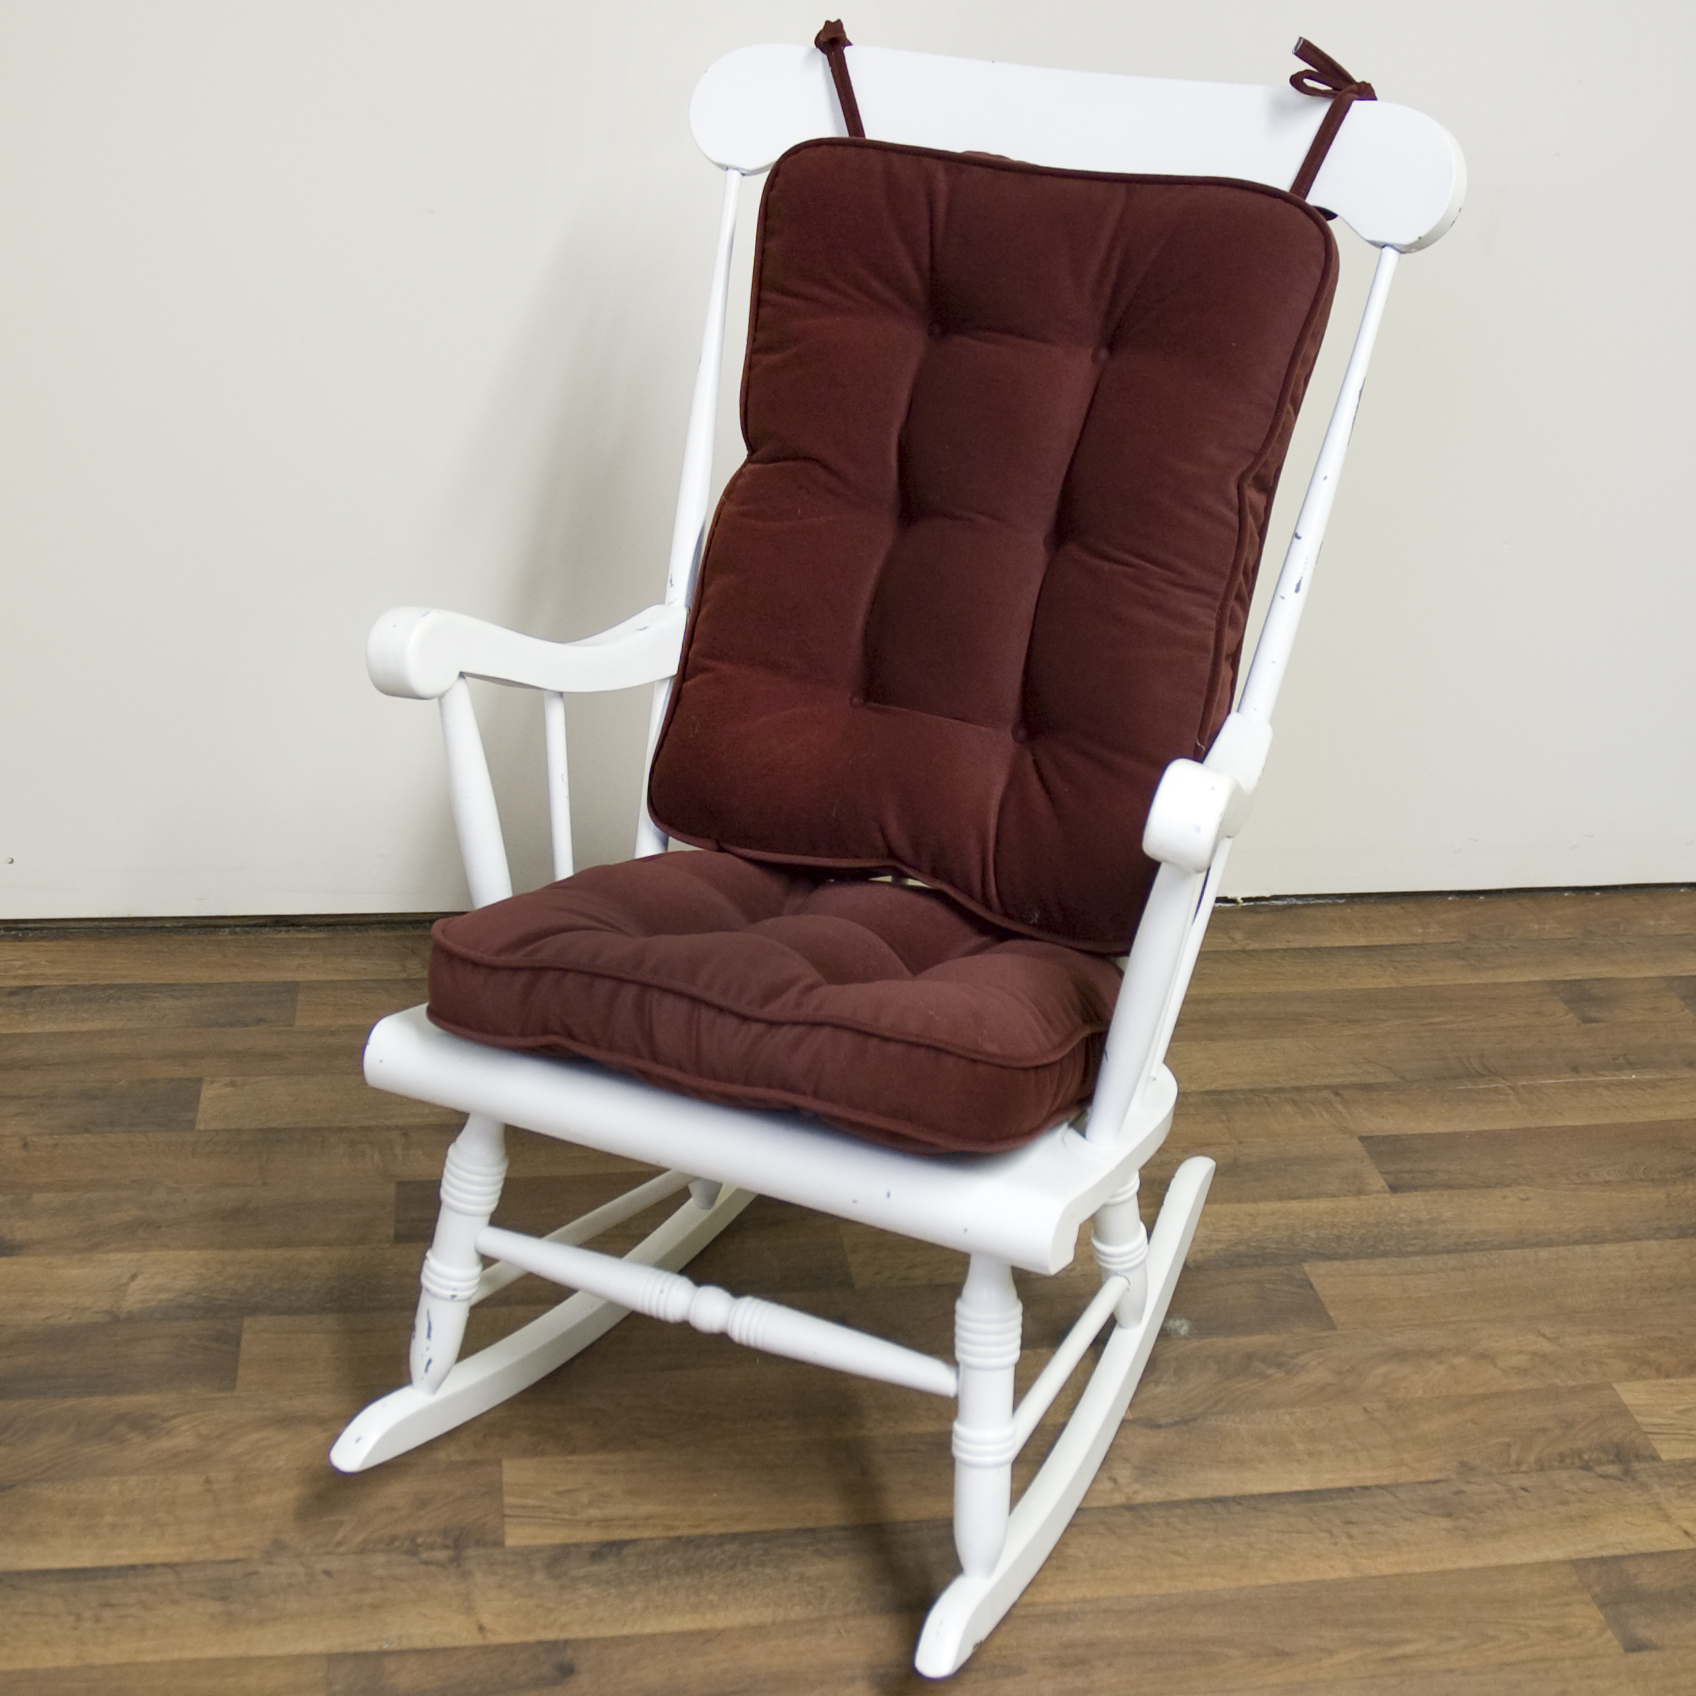 REPLACEMENT ROCKING CHAIR PADS AND SEAT CUSHIONS  Chair